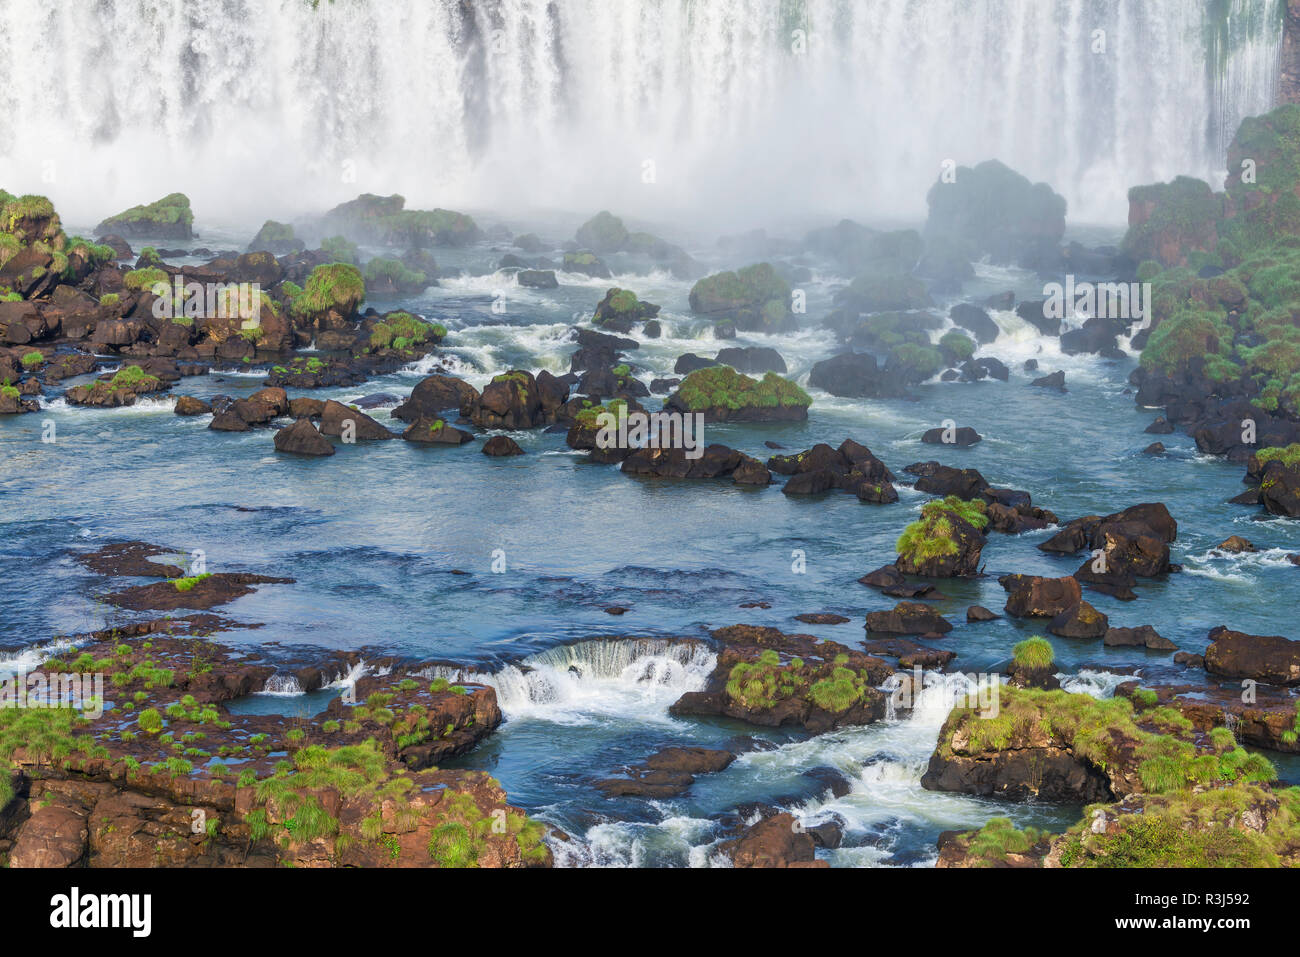 View of the Iguazu Falls from the Brazilian side, Foz do Iguacu, Parana State, Brazil - Stock Image